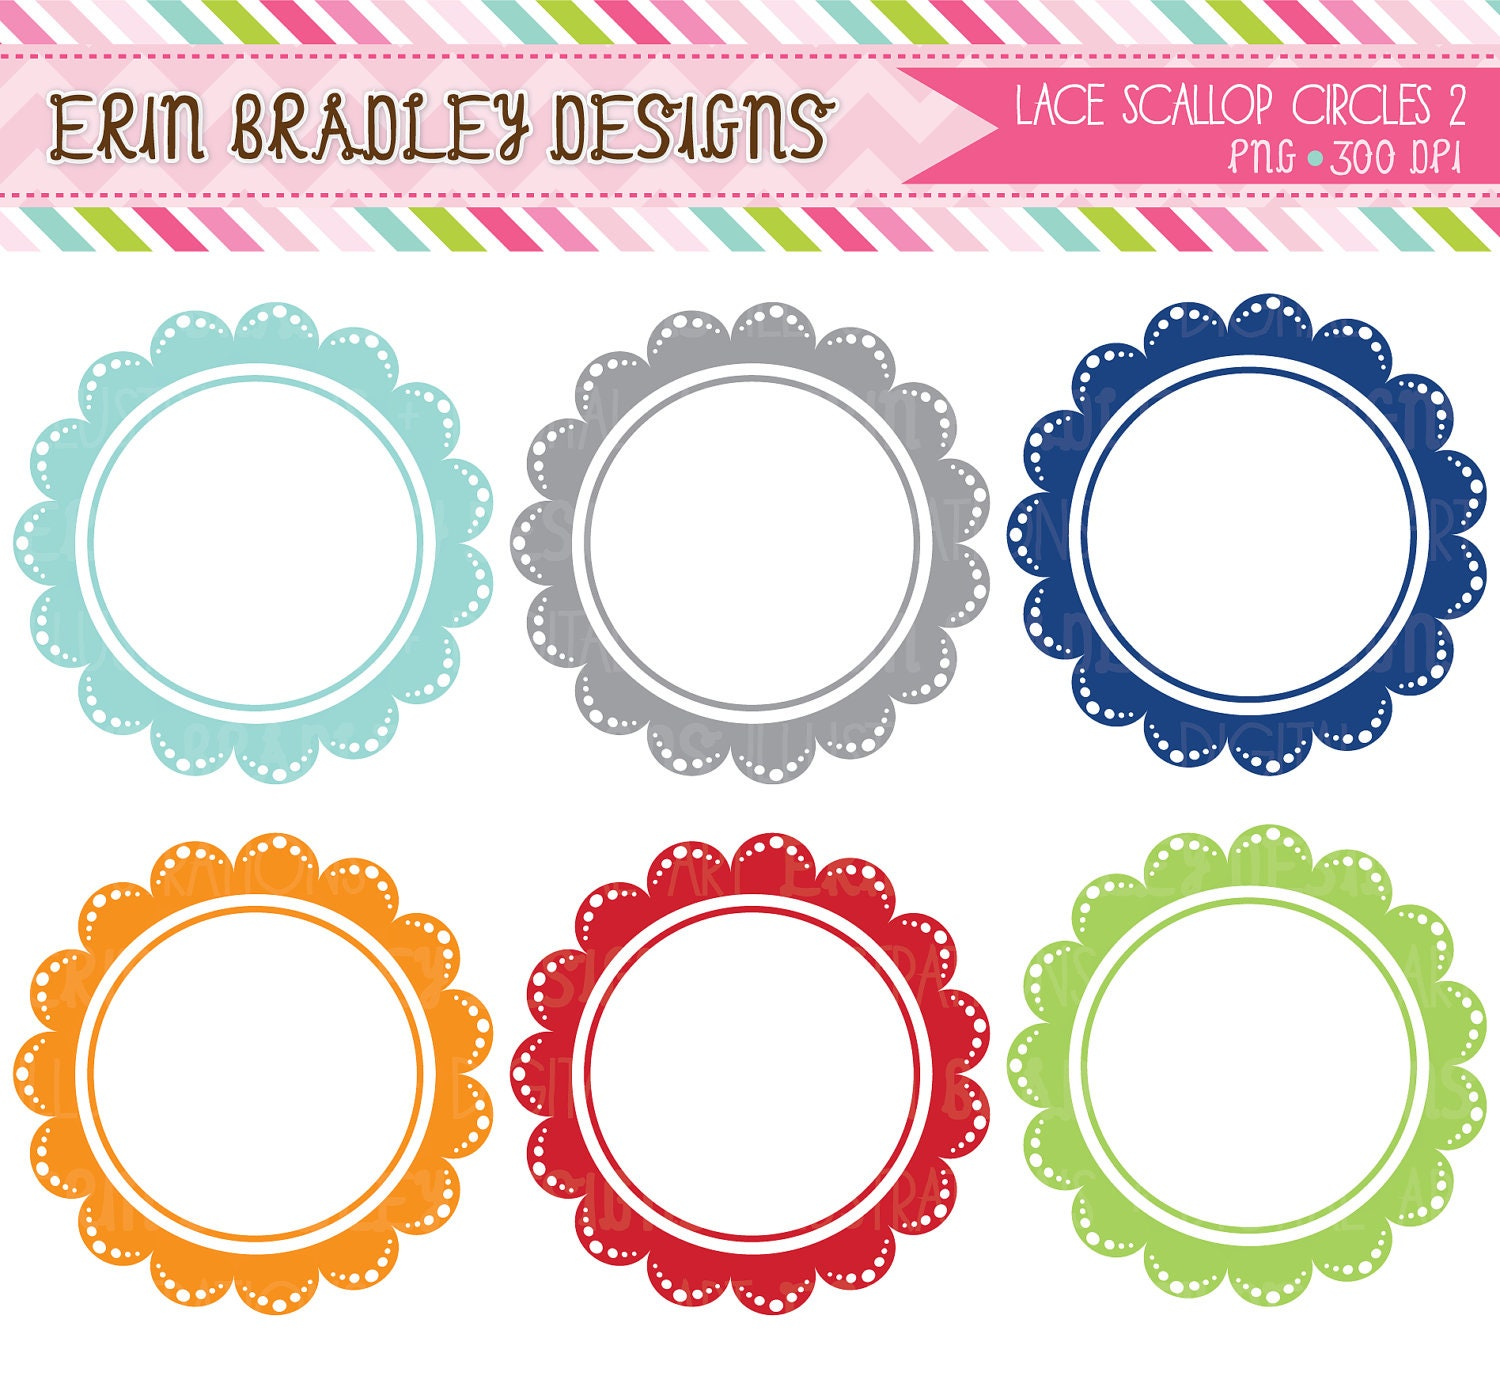 Scallop Frame Png Scallop Frames Clipart